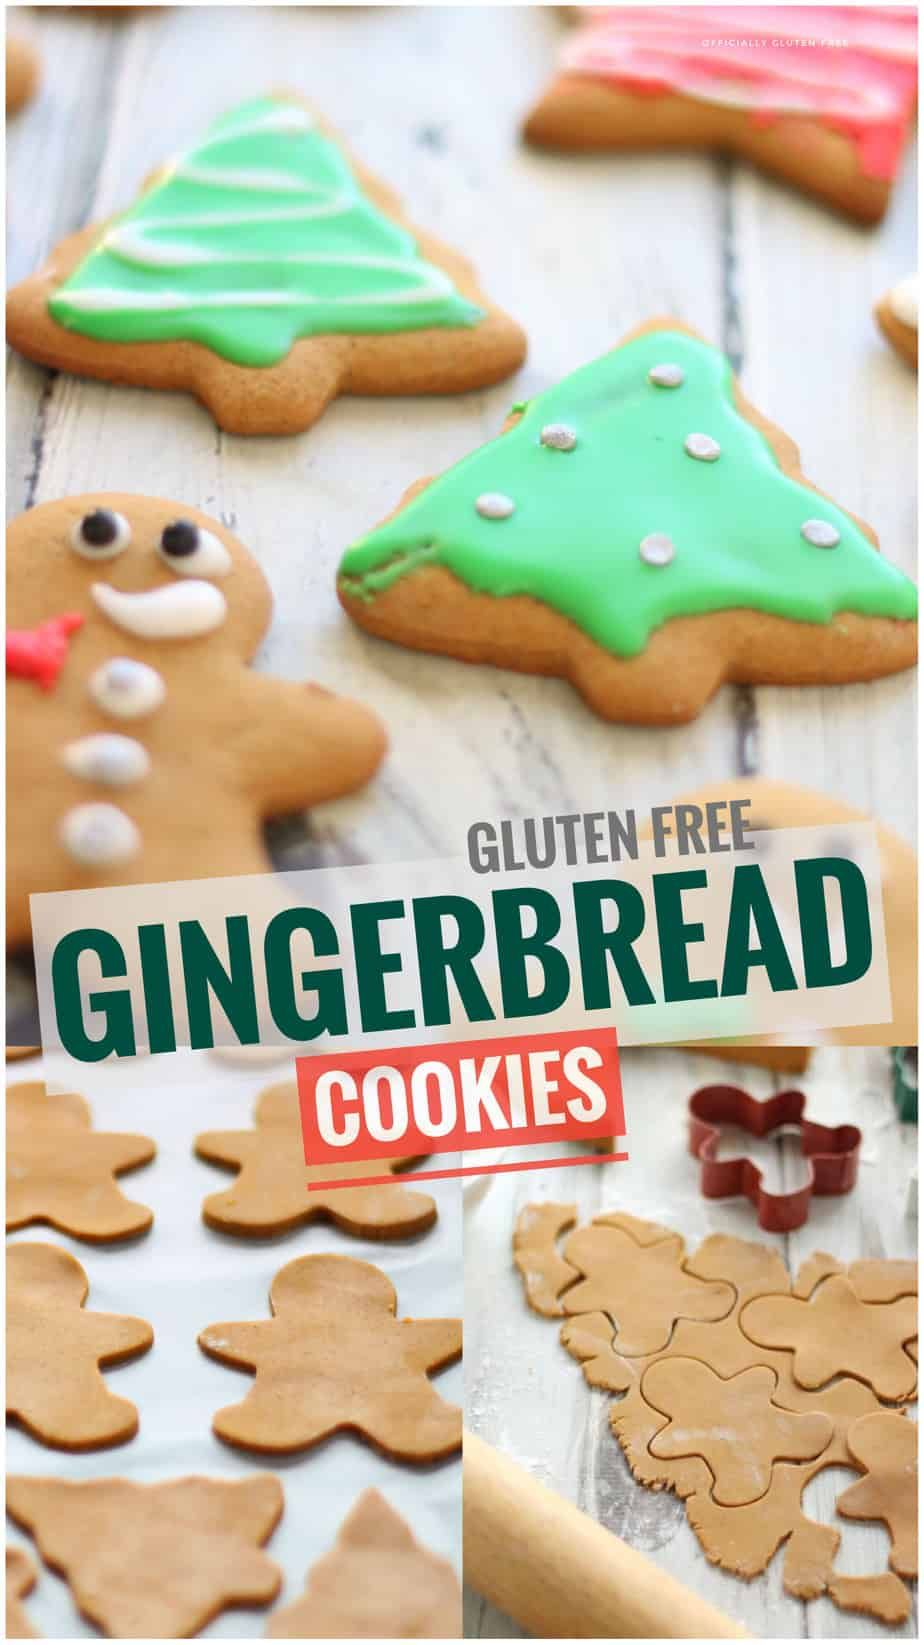 Gluten Free Gingerbread Cookies | Soft Gingerbread Cookie Recipe